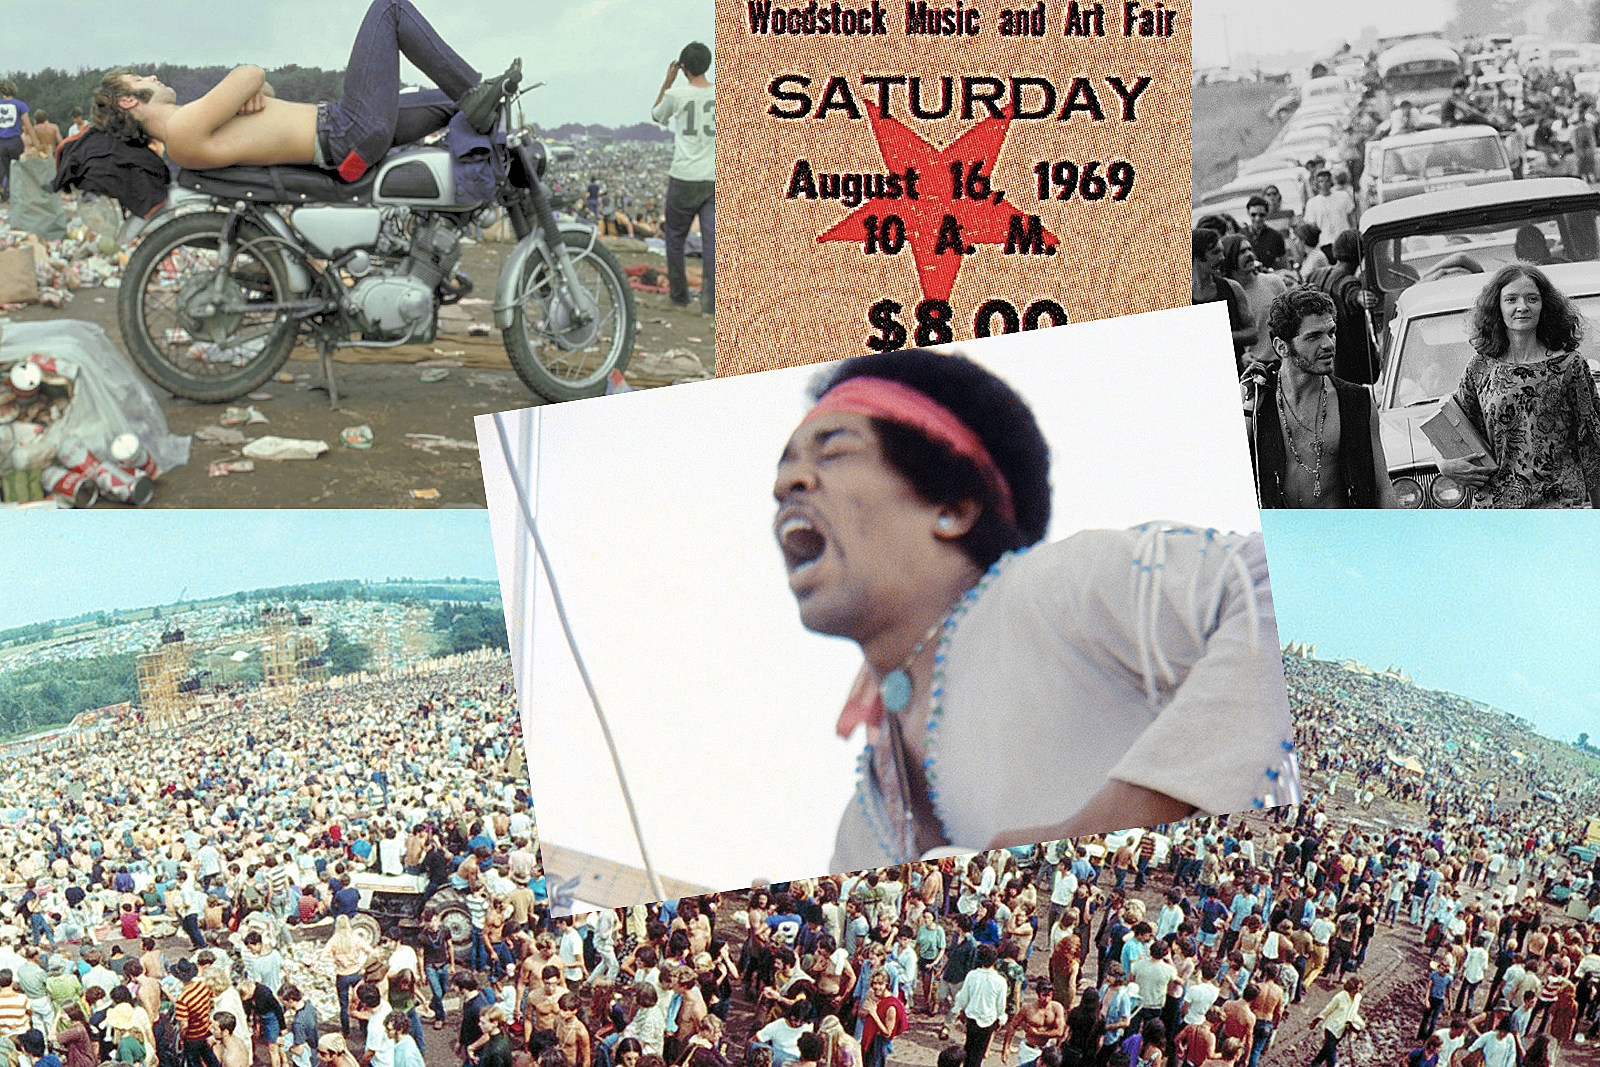 Woodstock Photos: 50 Great Shots From the Original Festival